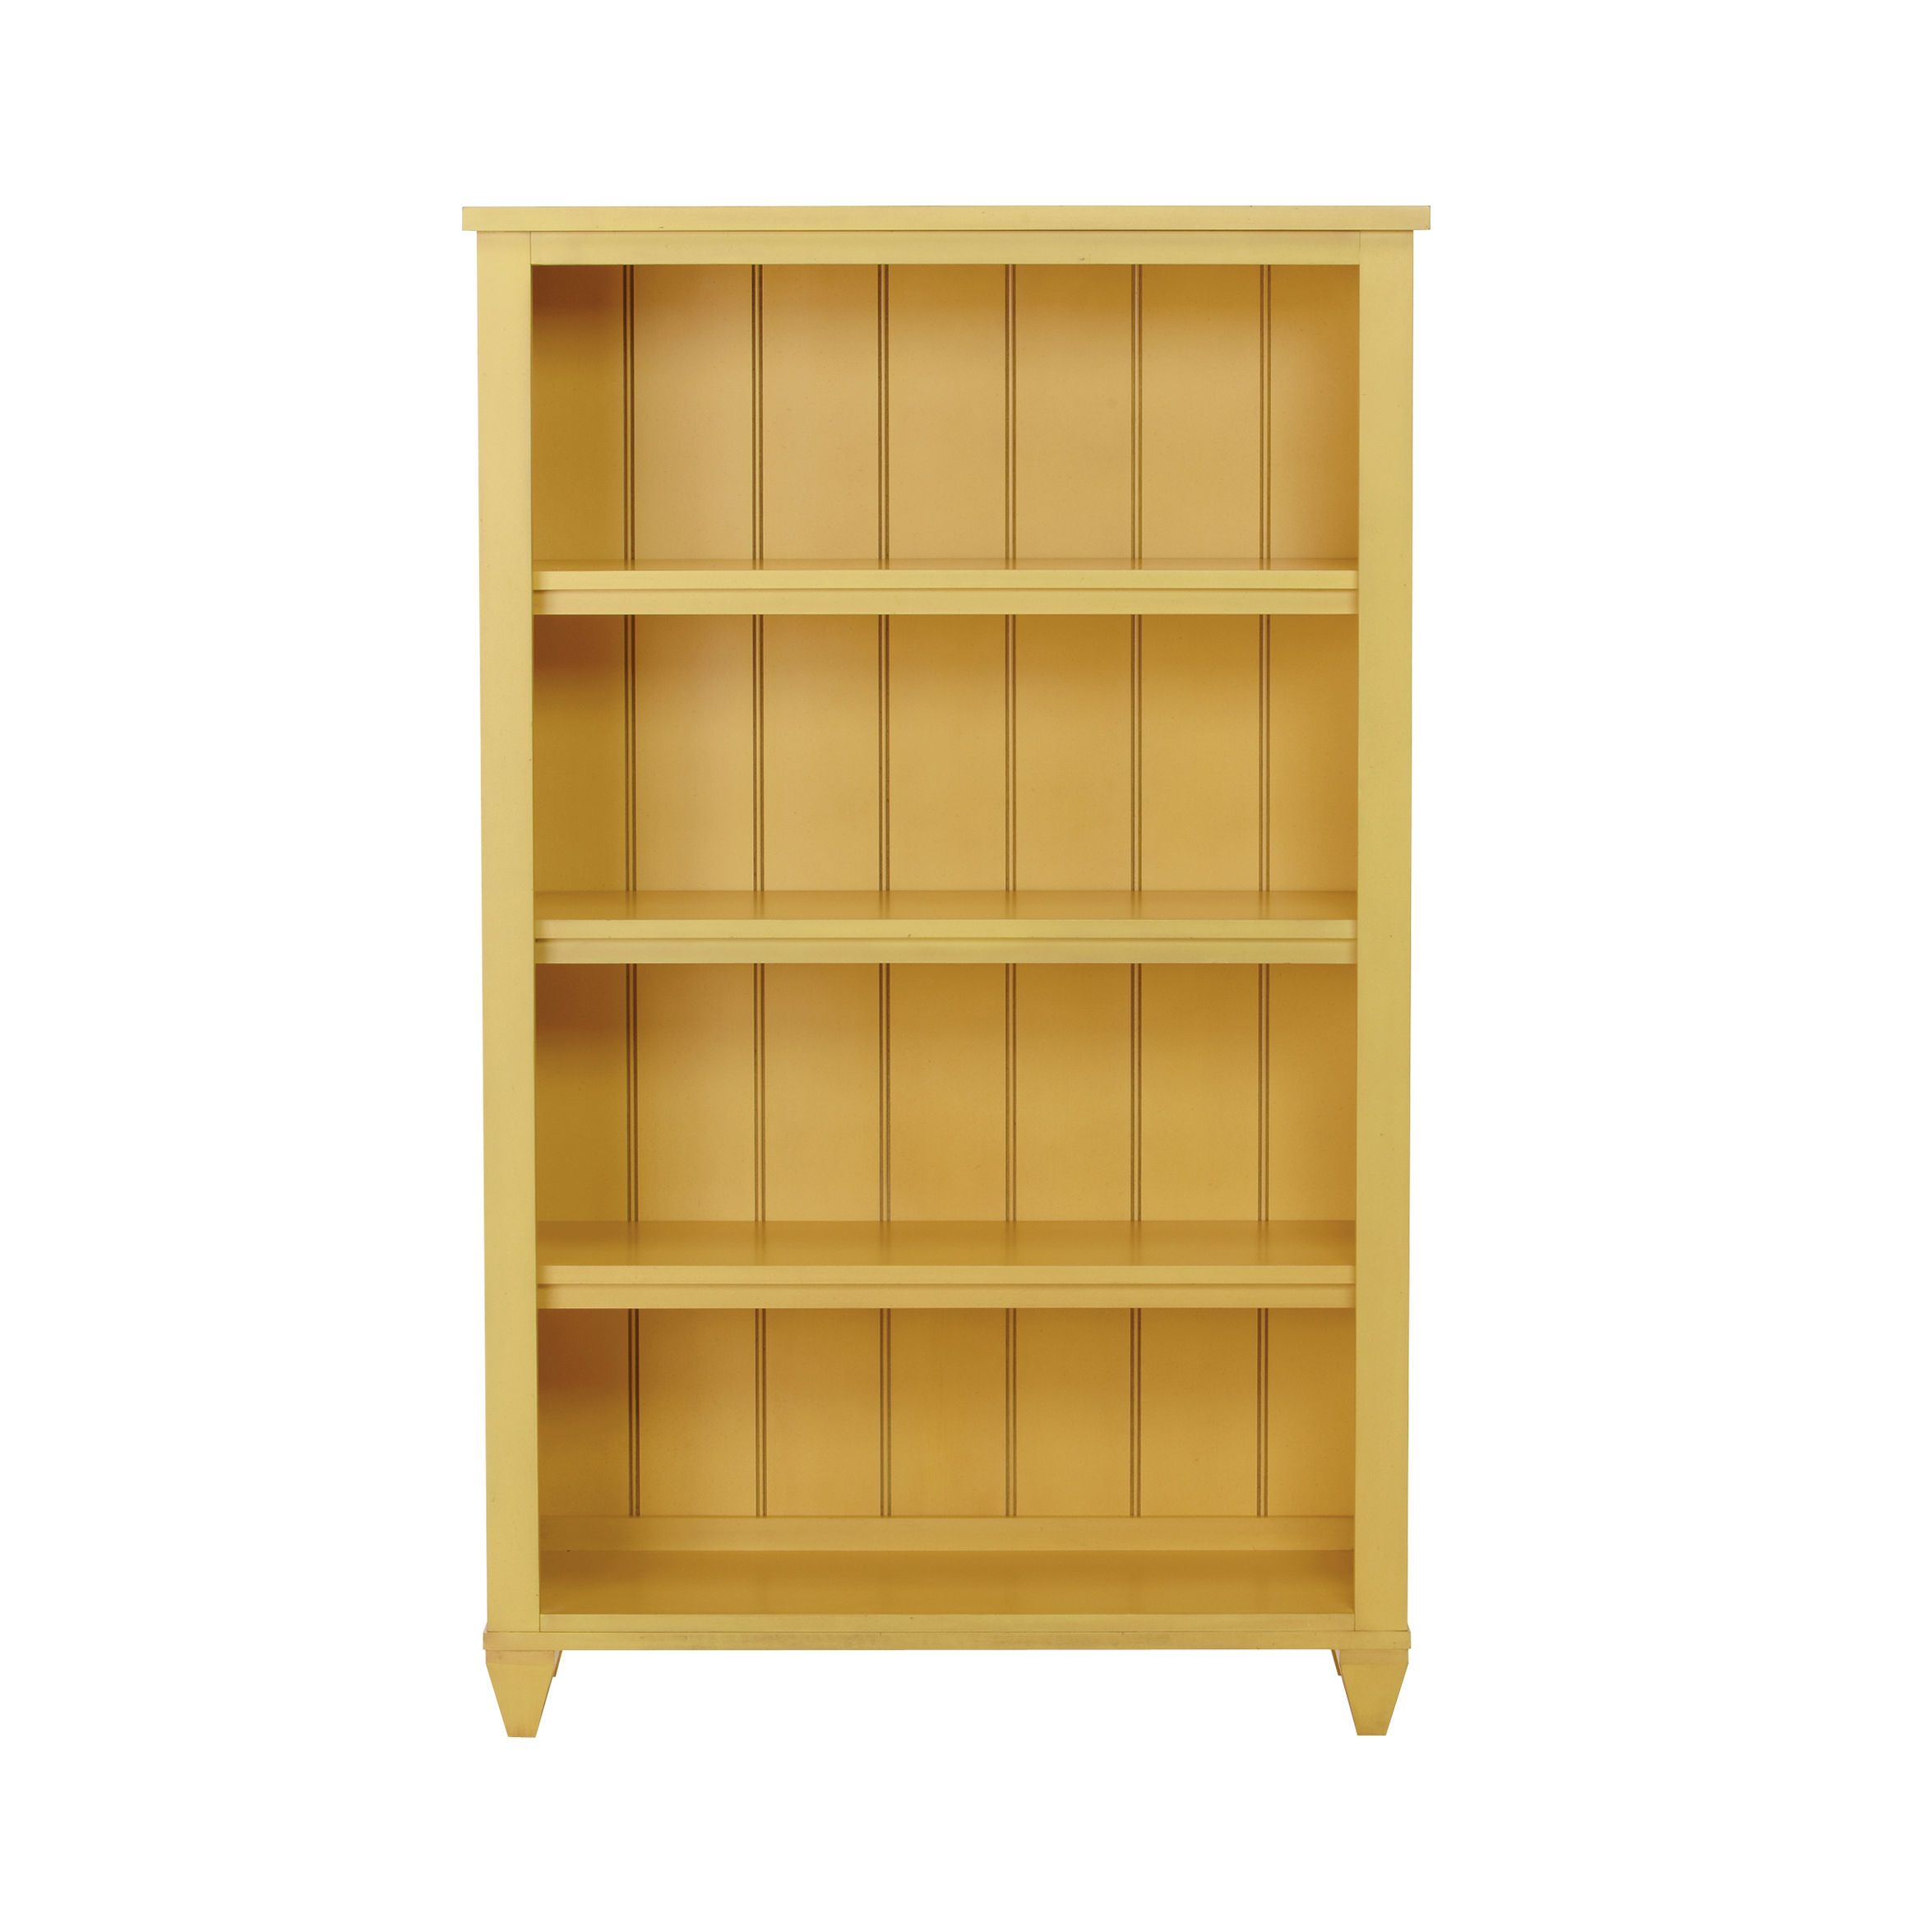 pictures ethan remarkable ideas inspiration allen pics surprising decoration bookcases used